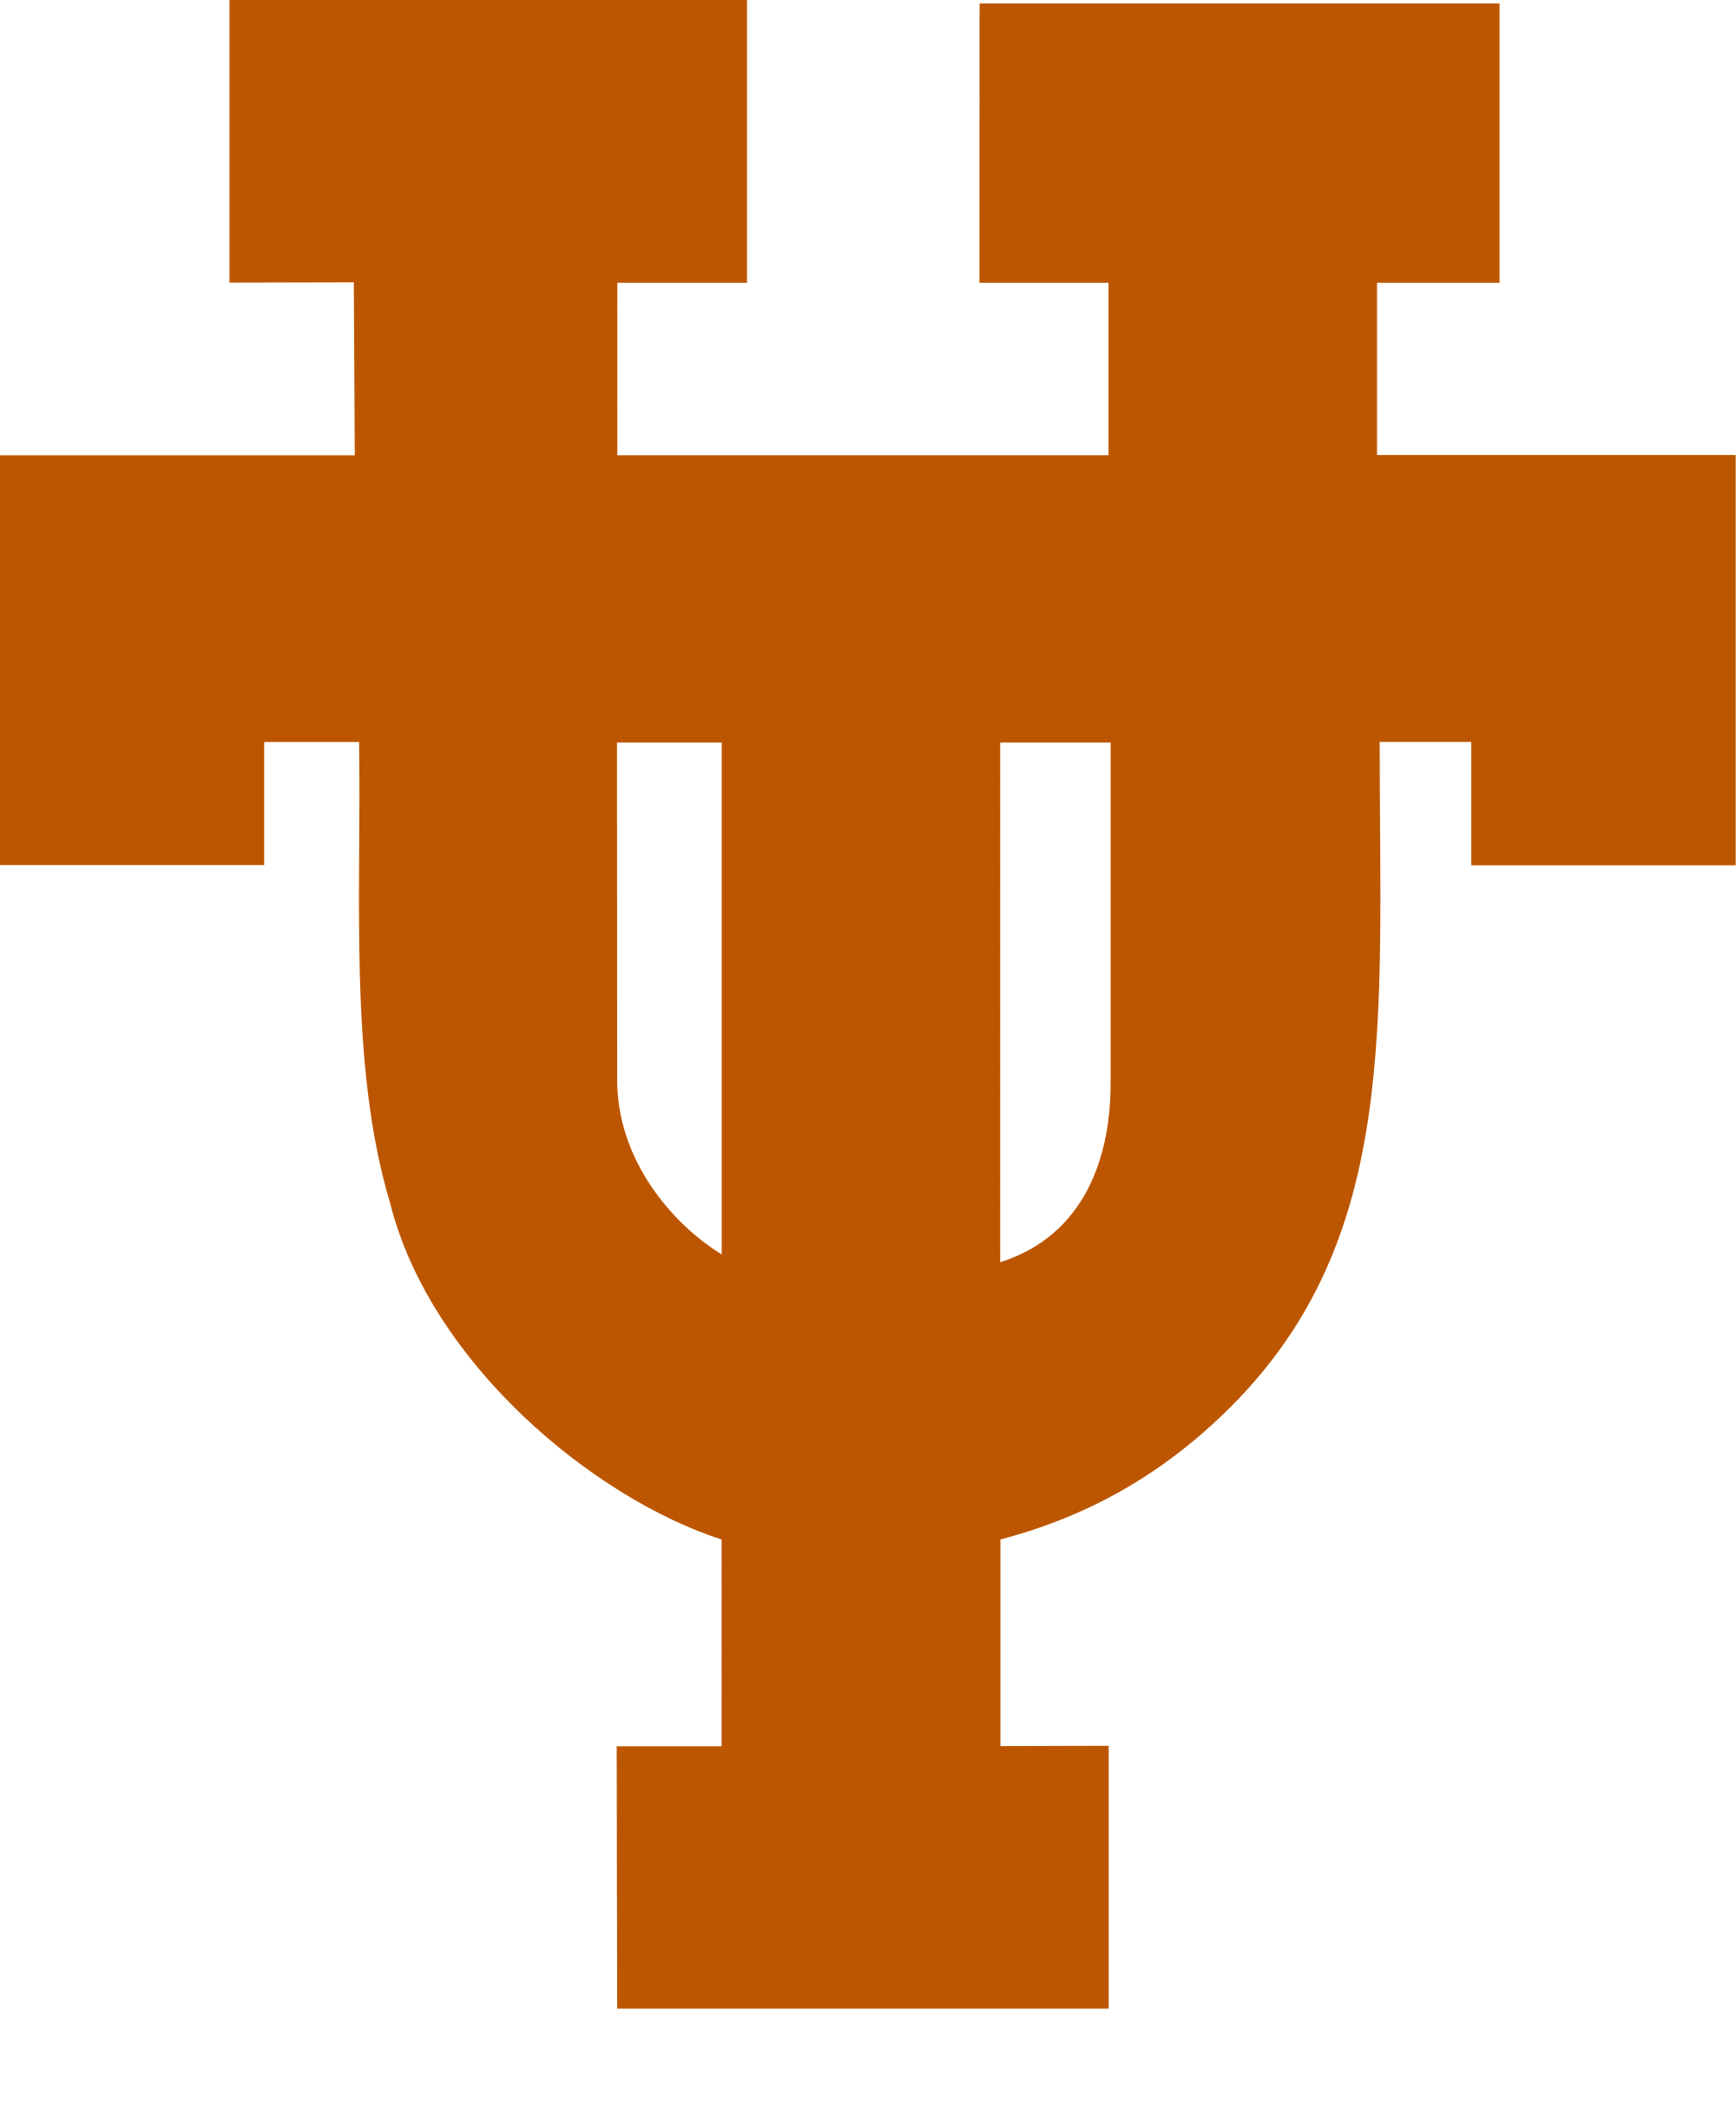 Longhorn clipart emblem. Texas longhorns at getdrawings